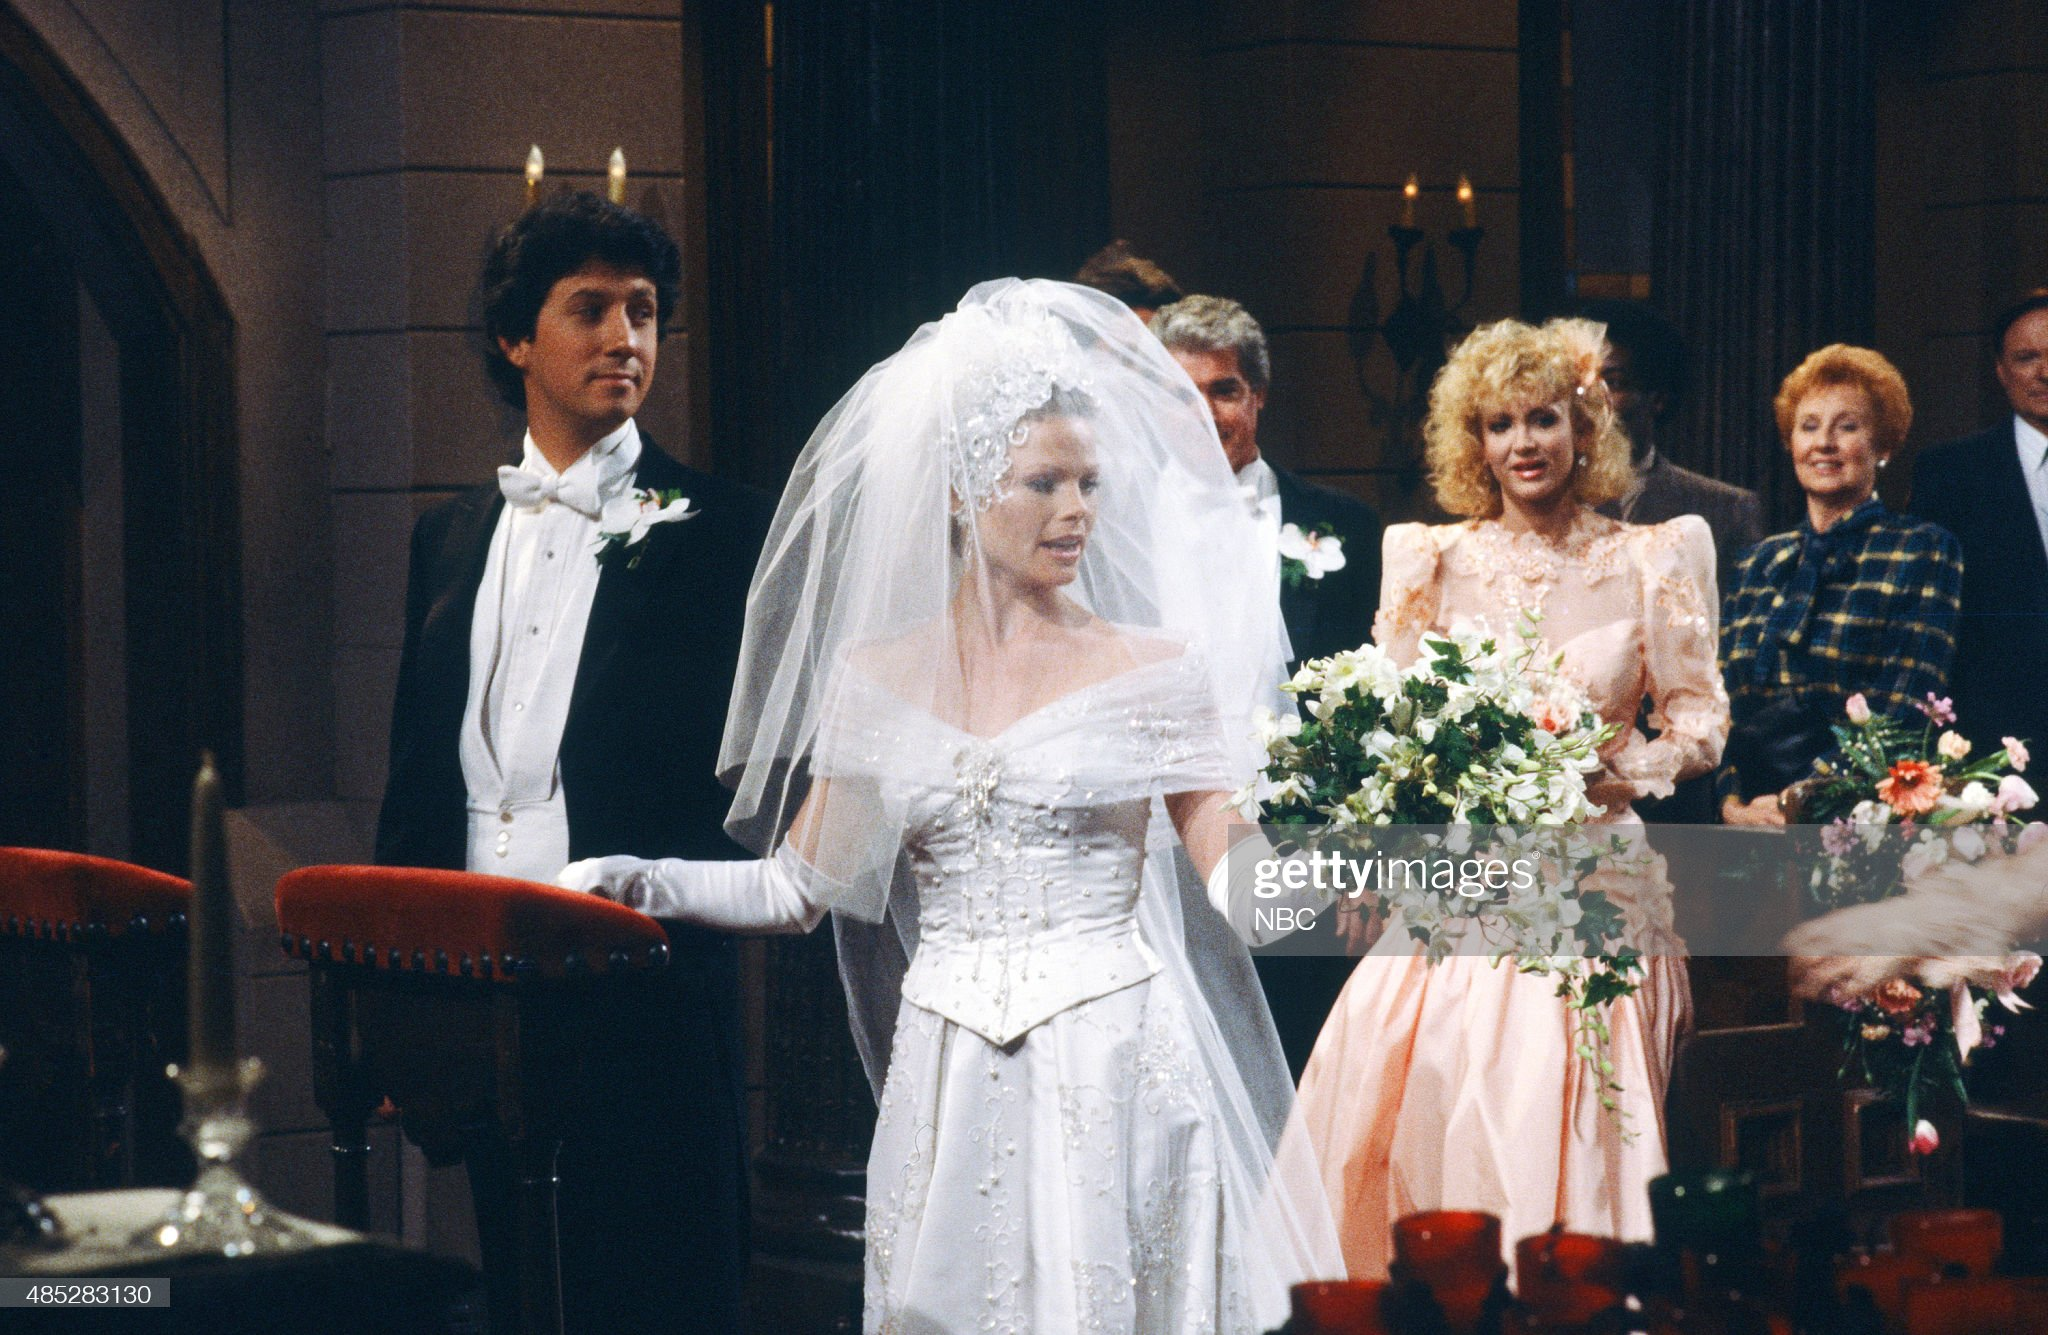 kimberly-brady-shane-donovan-wedding-pictured-charles-shaughnessy-as-picture-id485283130